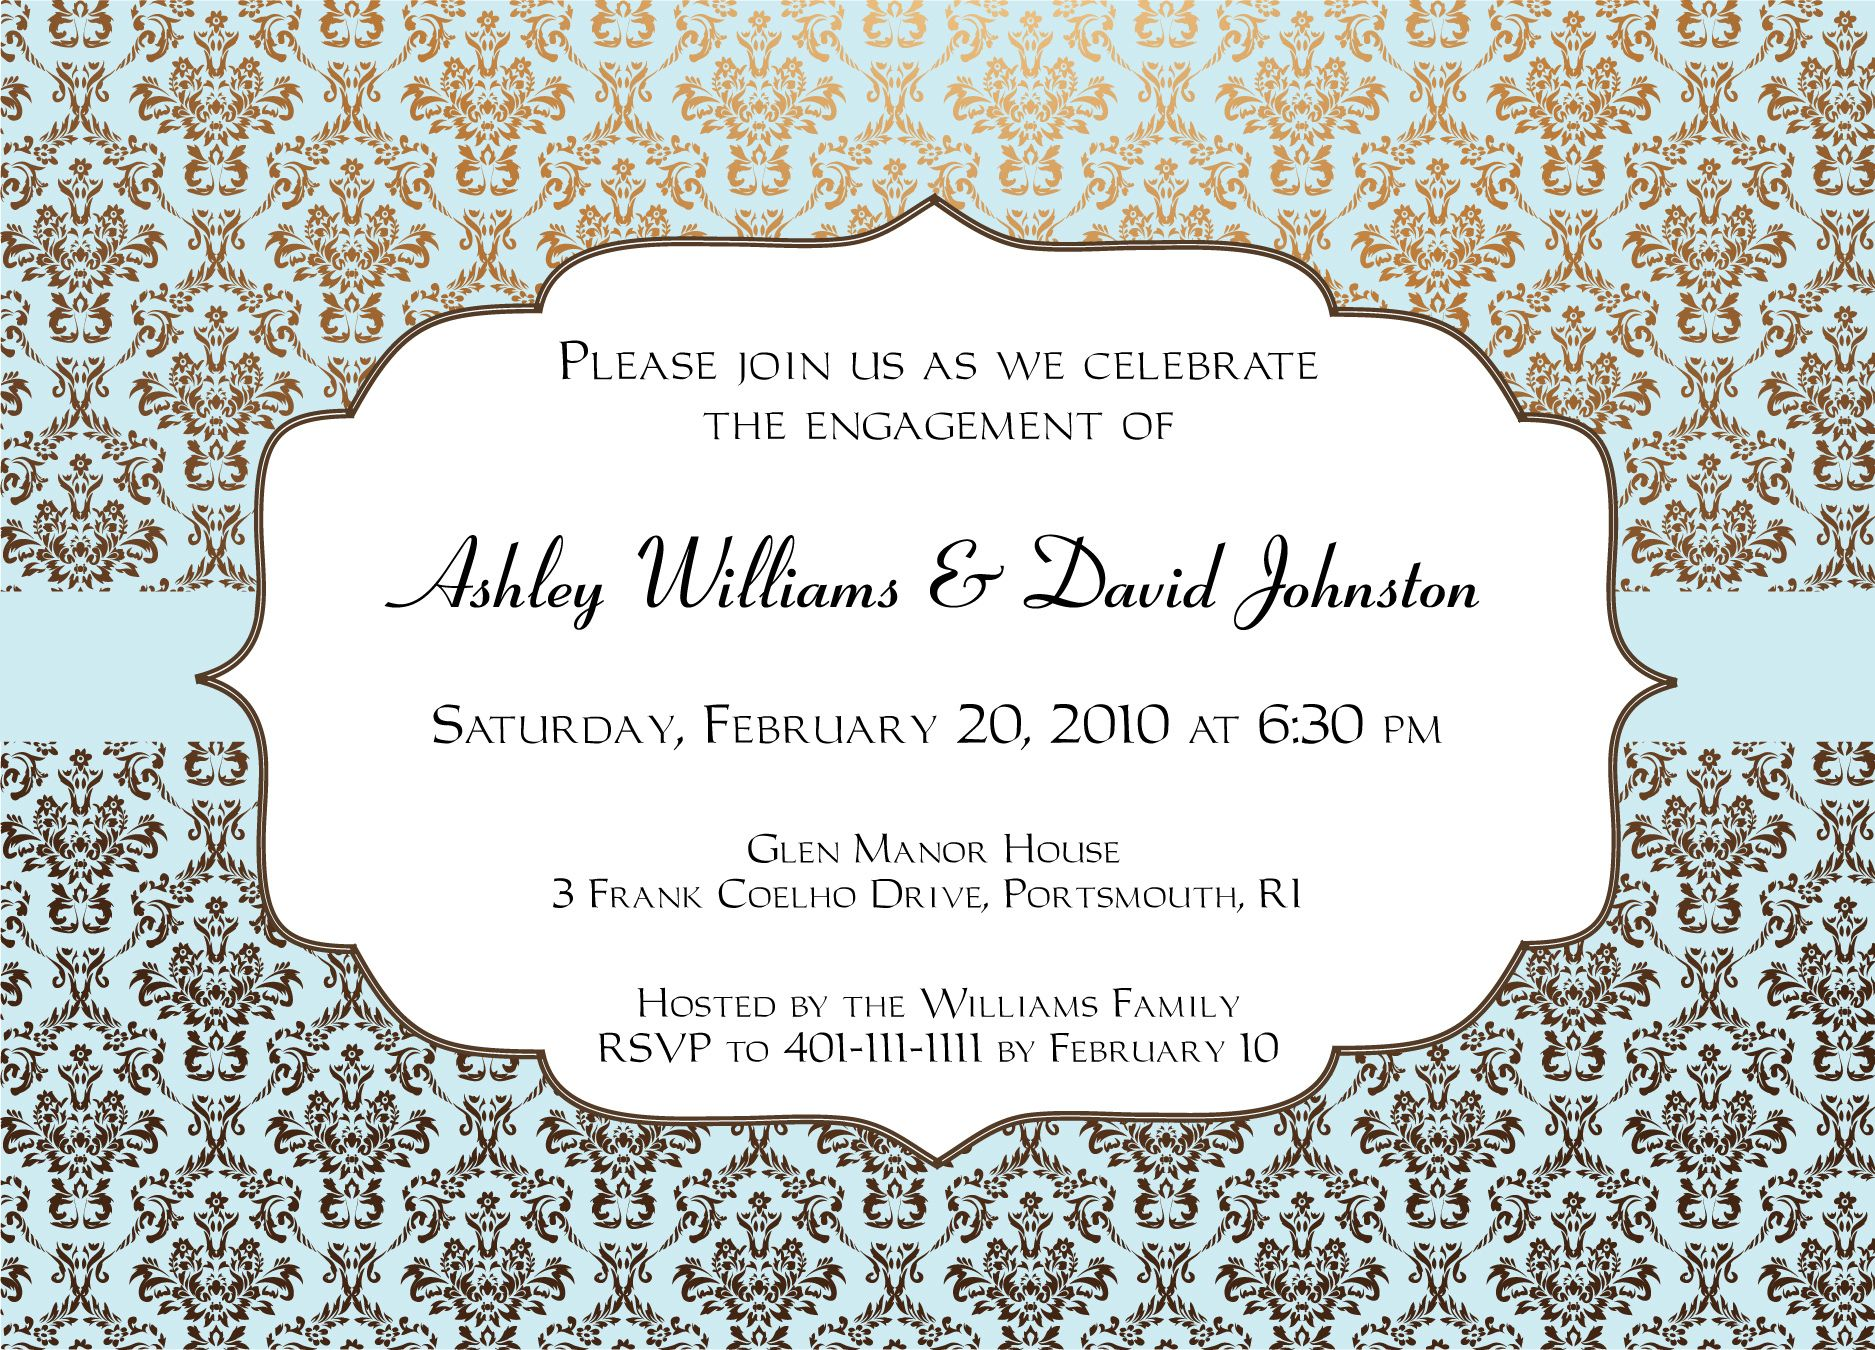 Engagement party invitations templates invitation for Wedding invitation cards nelspruit